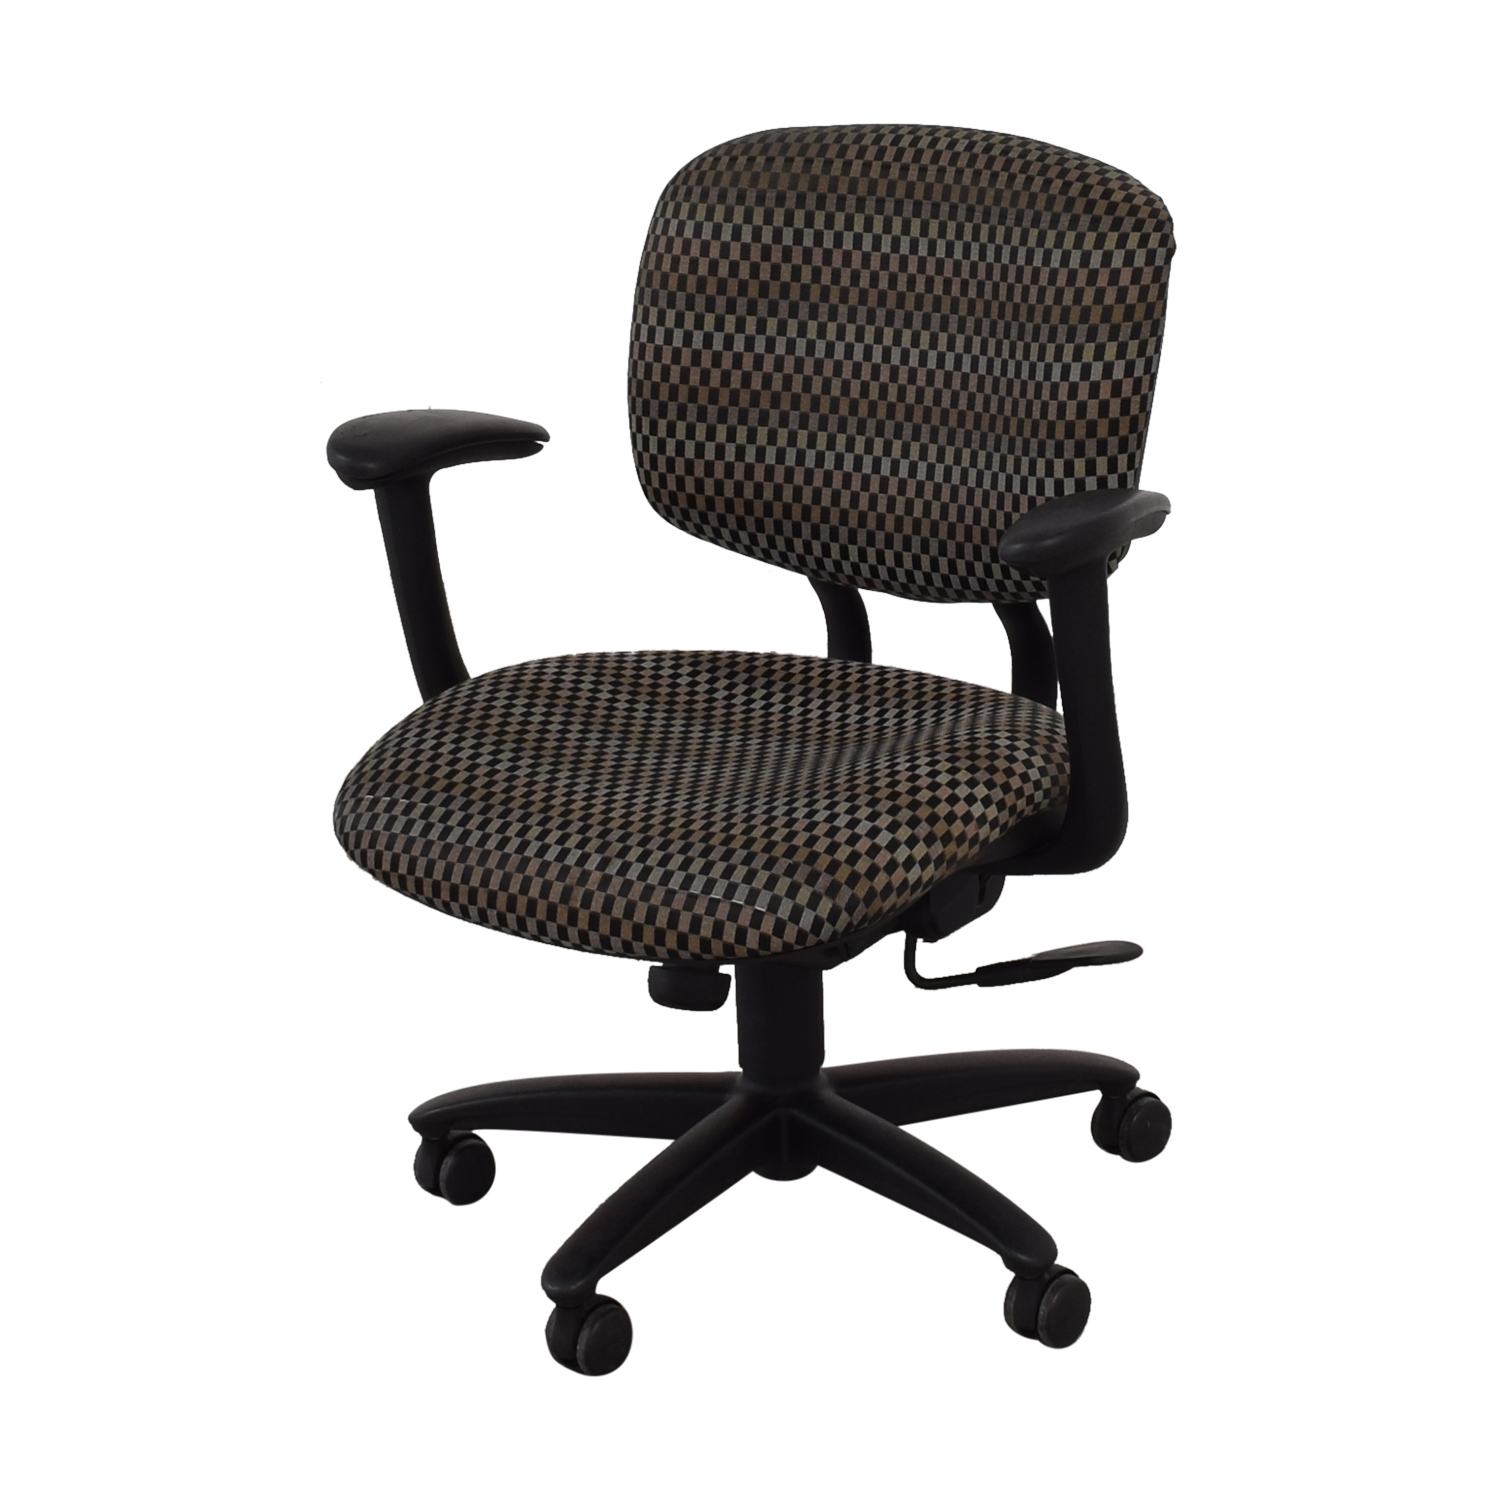 buy Haworth Improv Office Desk Chair Haworth Home Office Chairs